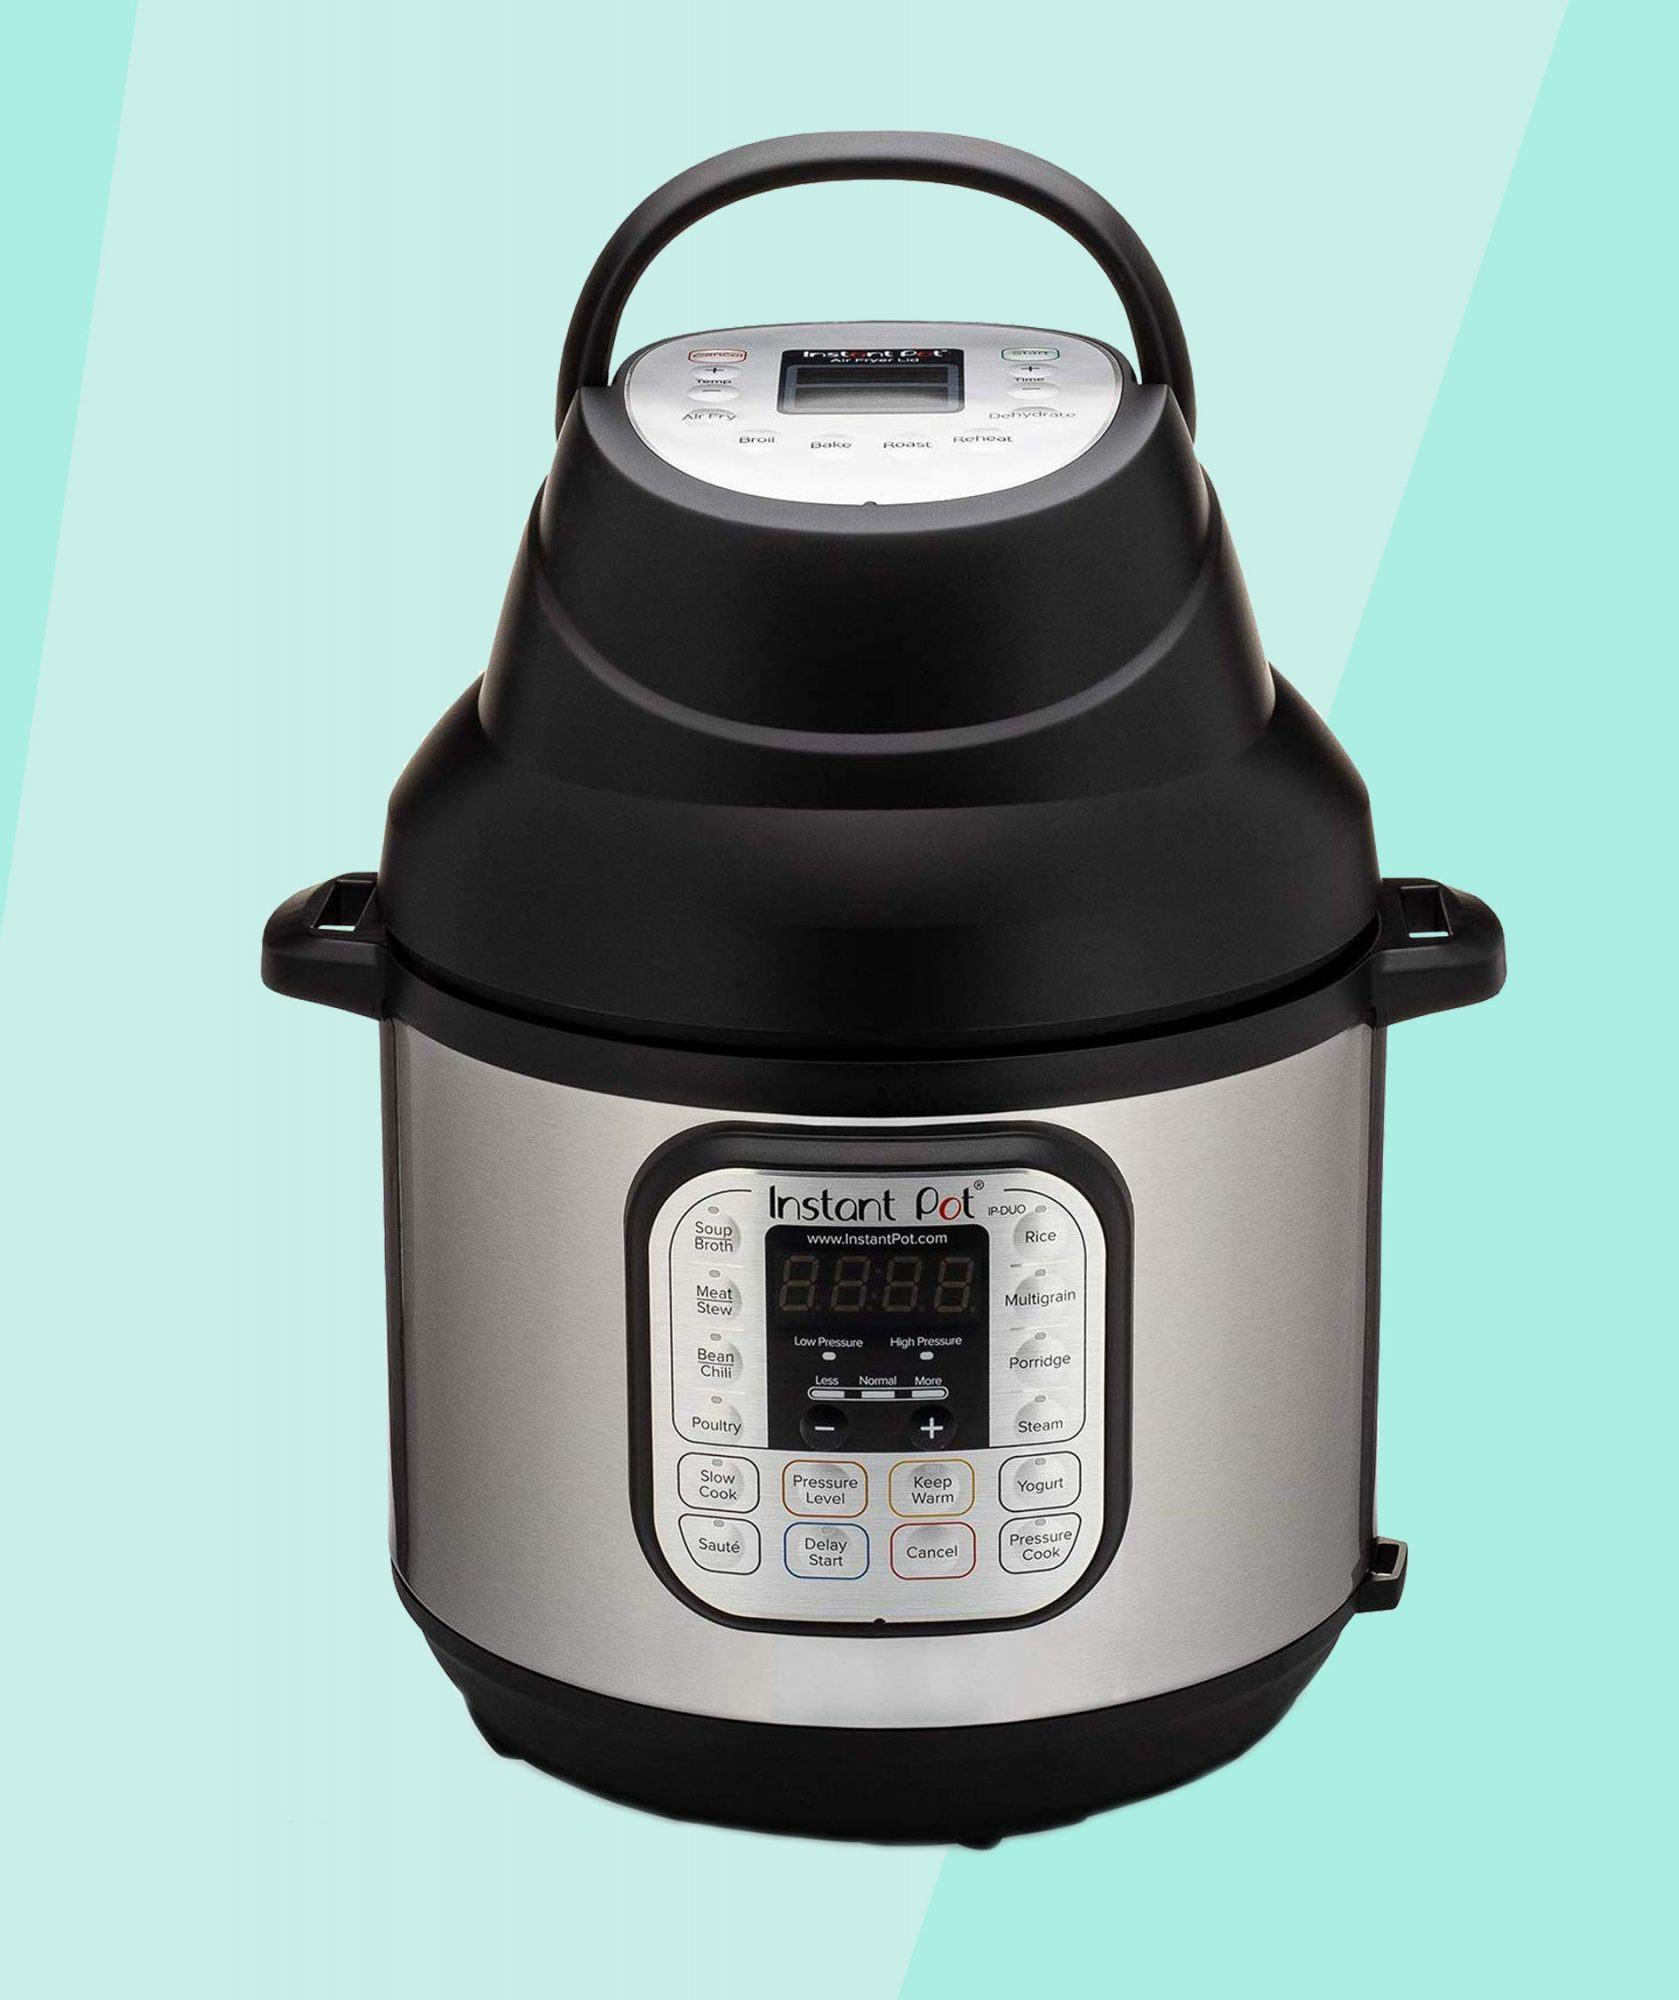 Instant Pot Released a Genius New Lid That Transforms Its Pressure Cooker Into an Air Fryer